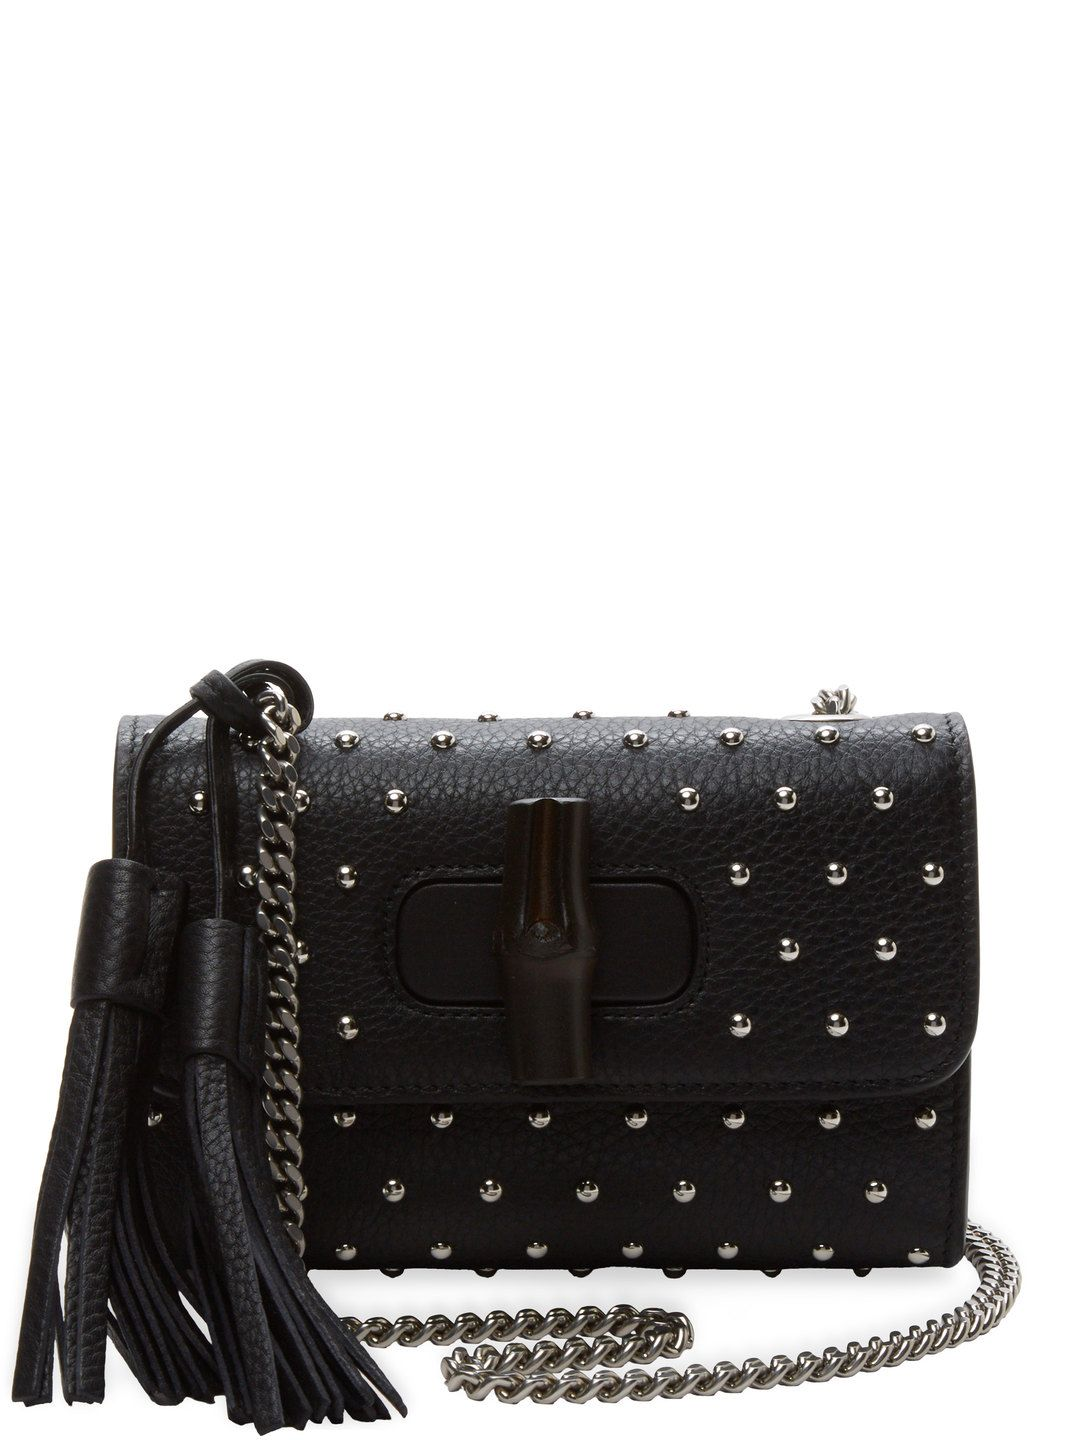 8340d38af0 Miss Bamboo Wood Small Studded Leather Crossbody by Gucci Clothing    Accessories at Gilt